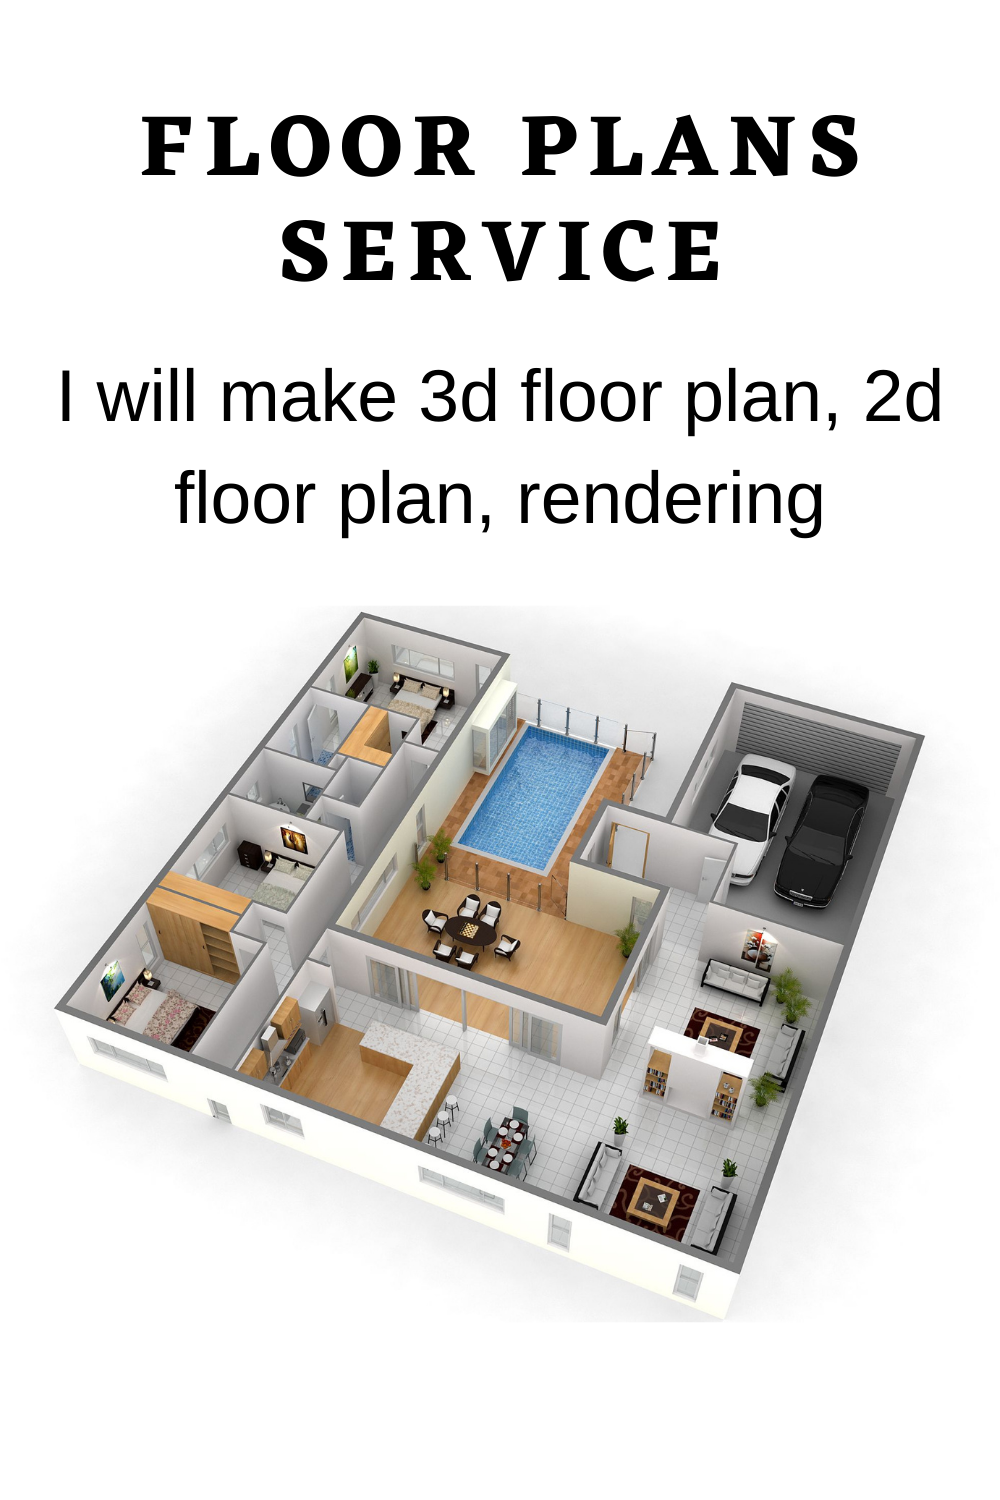 I Will Make 3d Floor Plan 2d Floor Plan Rendering House Floor Plans Home Floor Plan In 2020 Floor Plans Diy House Plans Free Floor Plans